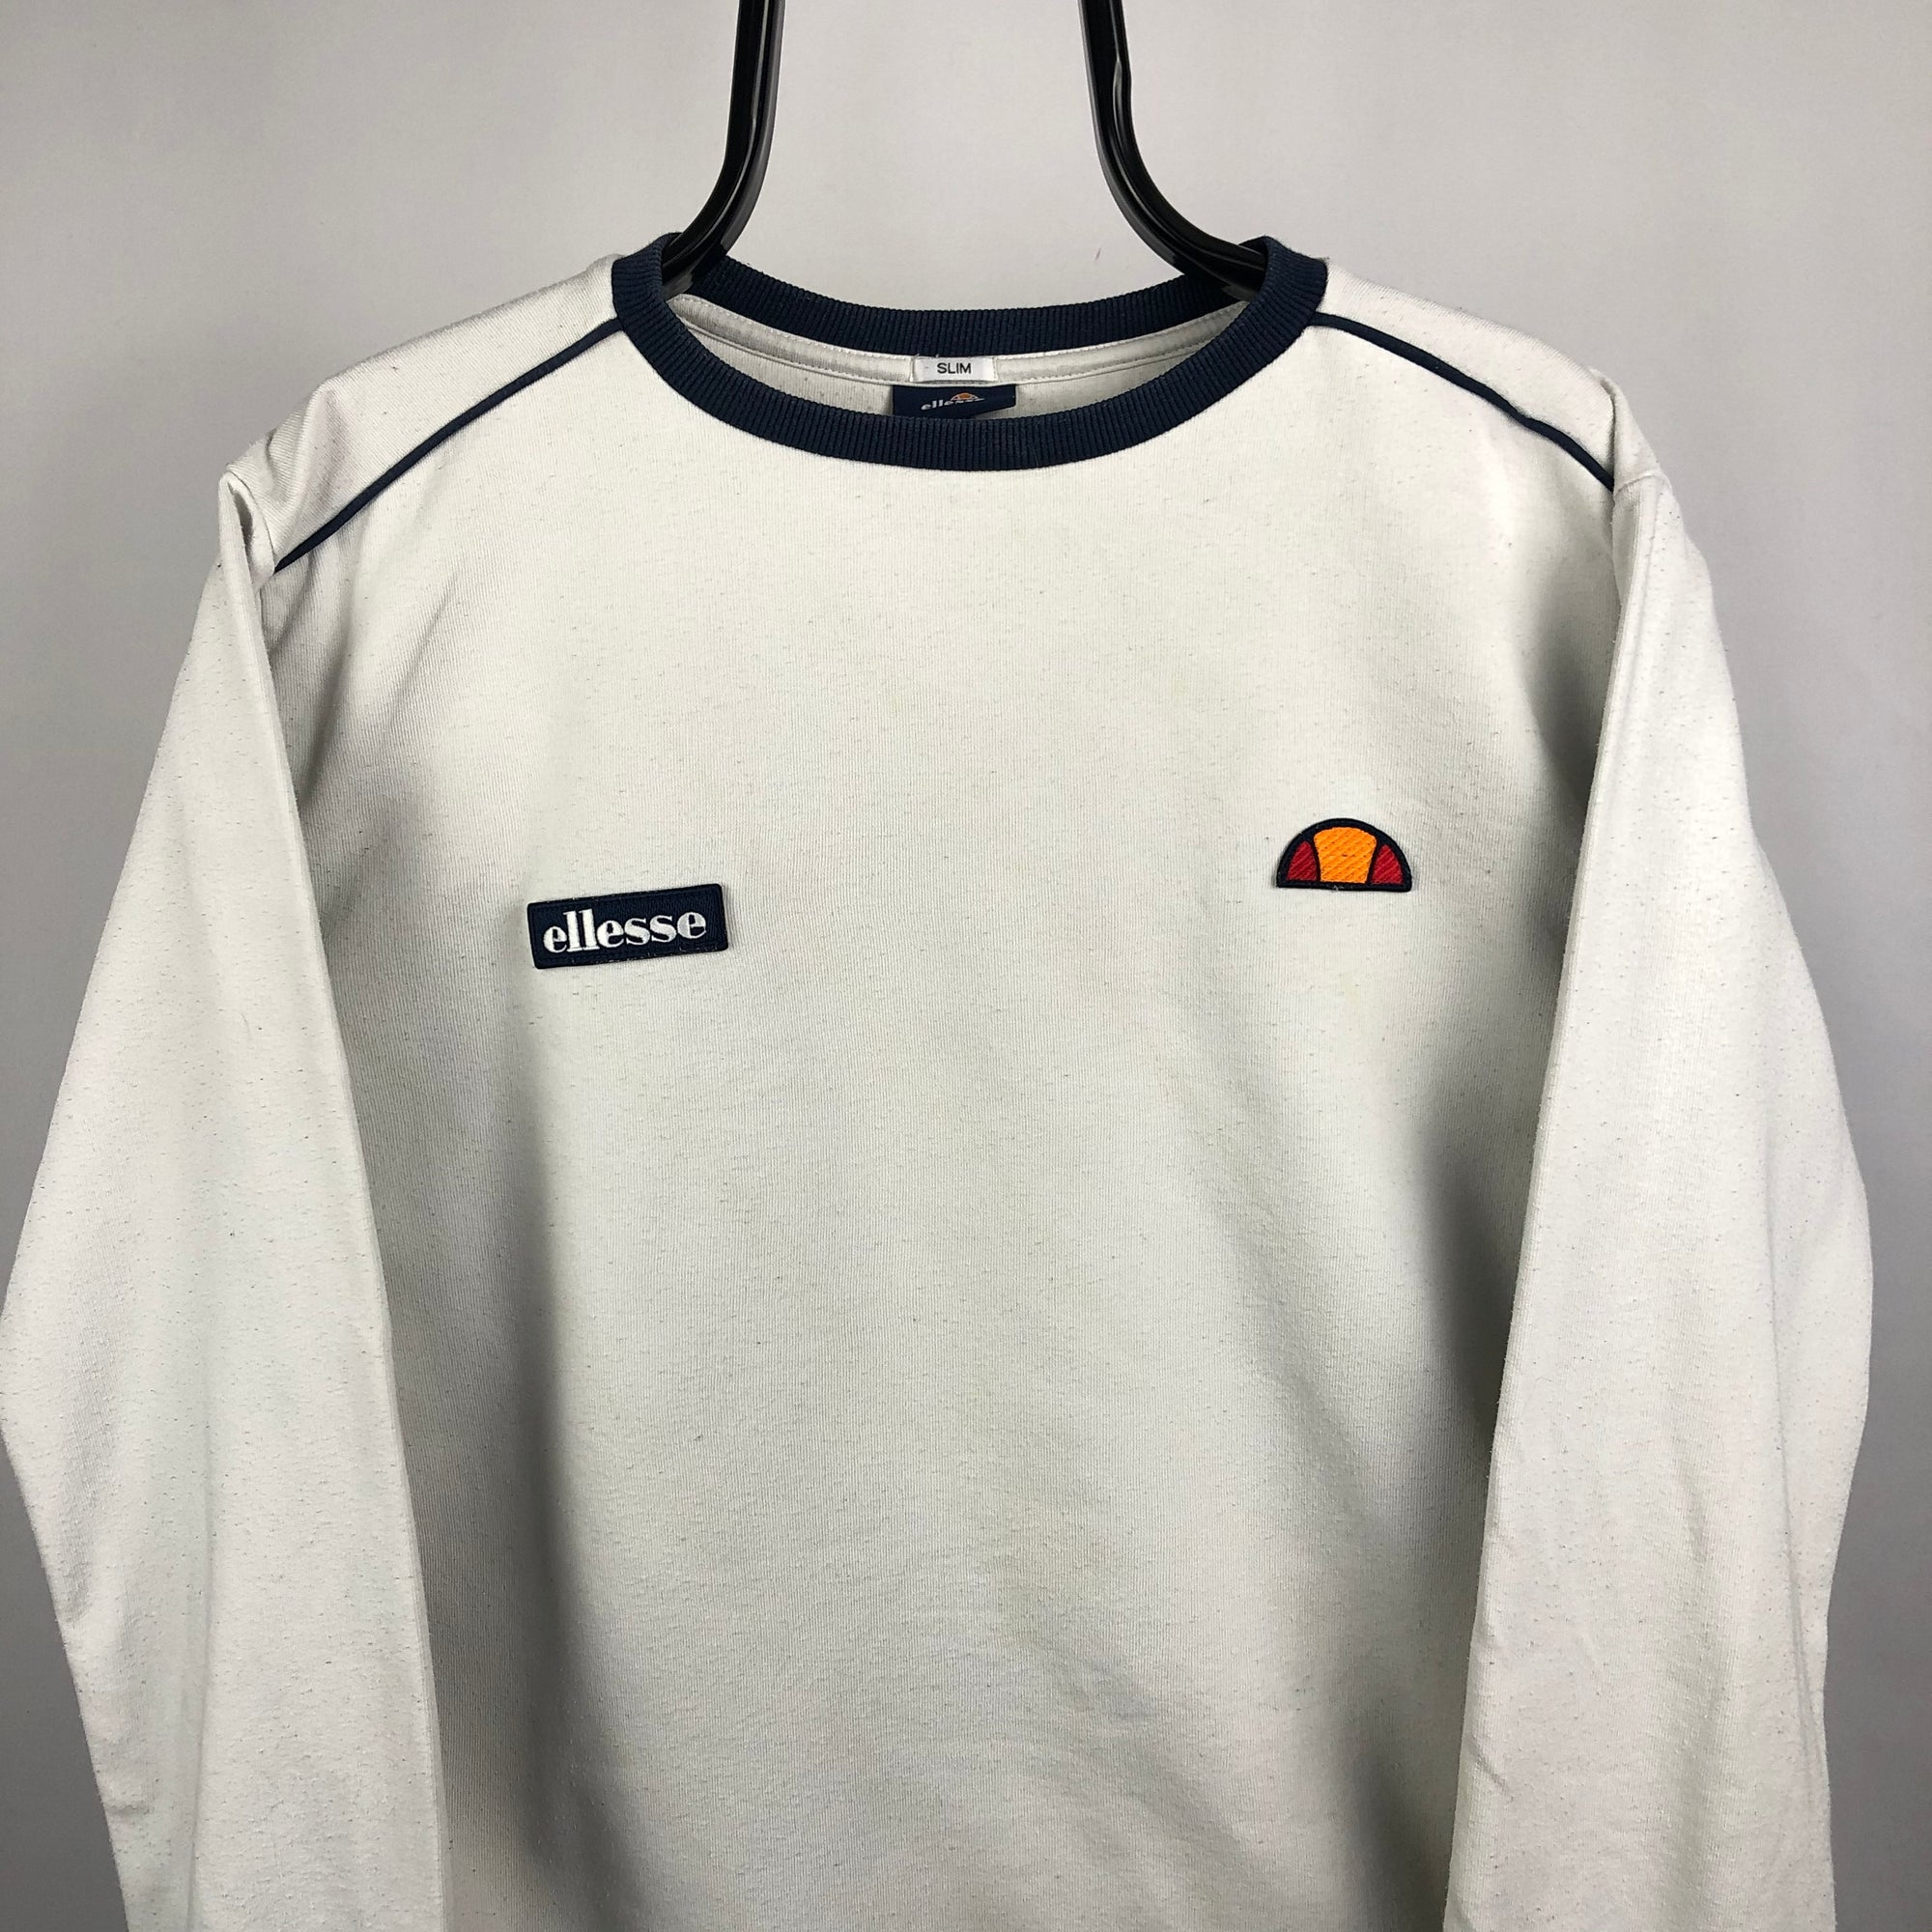 Ellesse Embroidered Small Logo Sweatshirt in White - Men's Medium/Women's Large